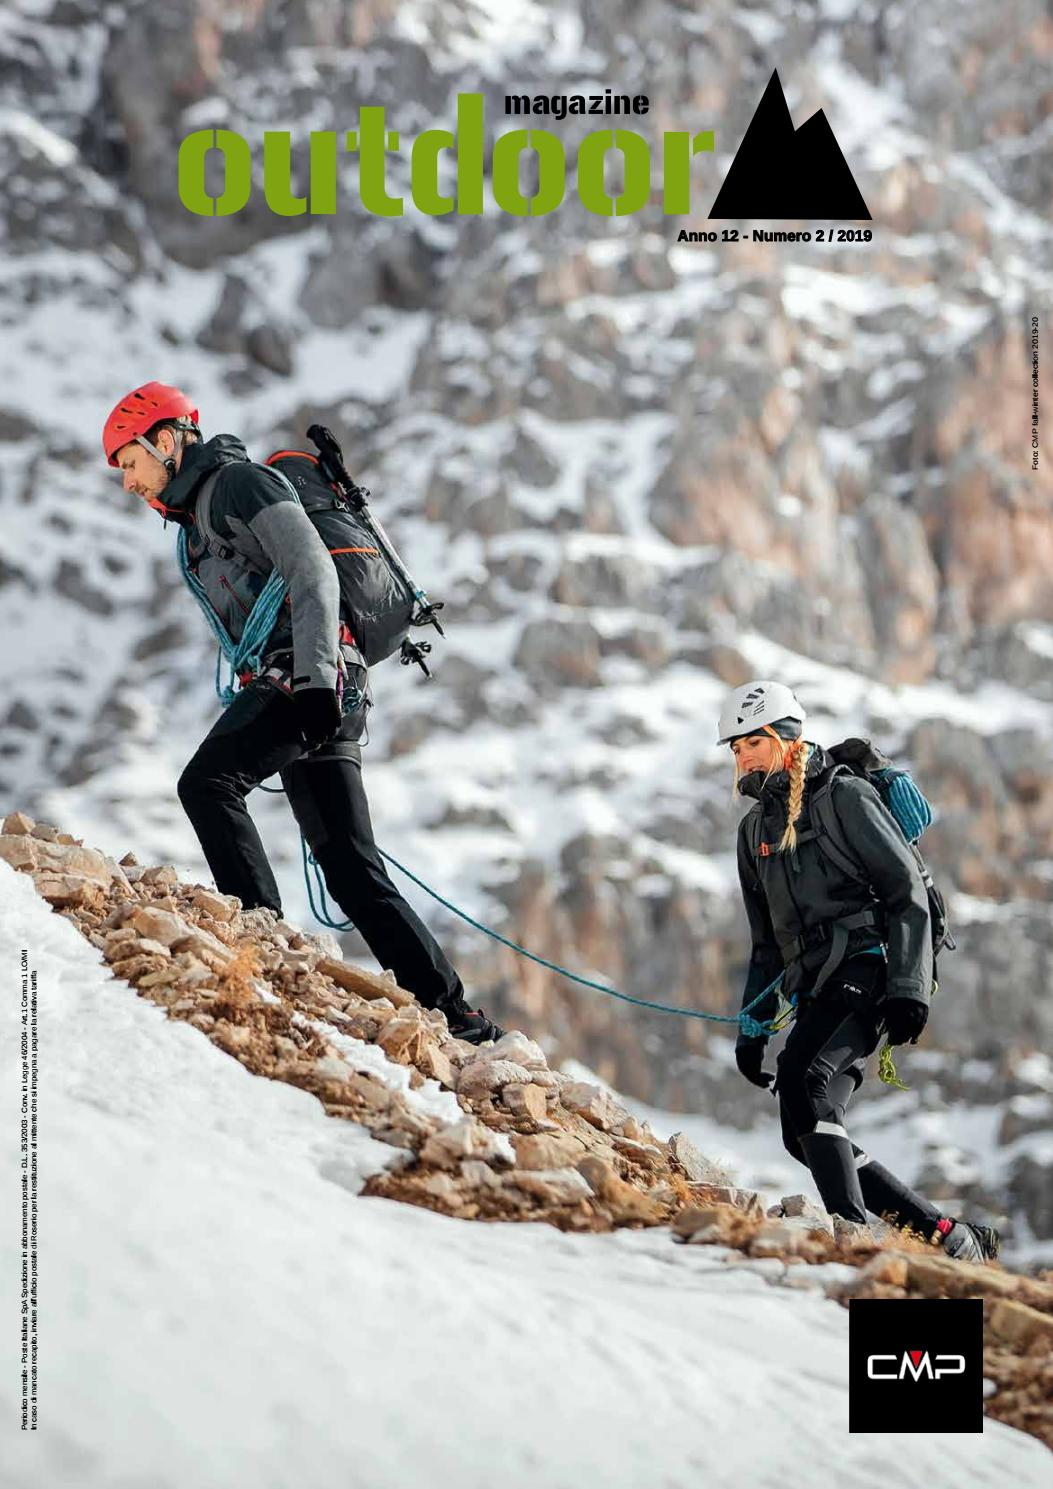 By Press Outdoor 2 Mag 2019 Sport Issuu GUzMVqpS